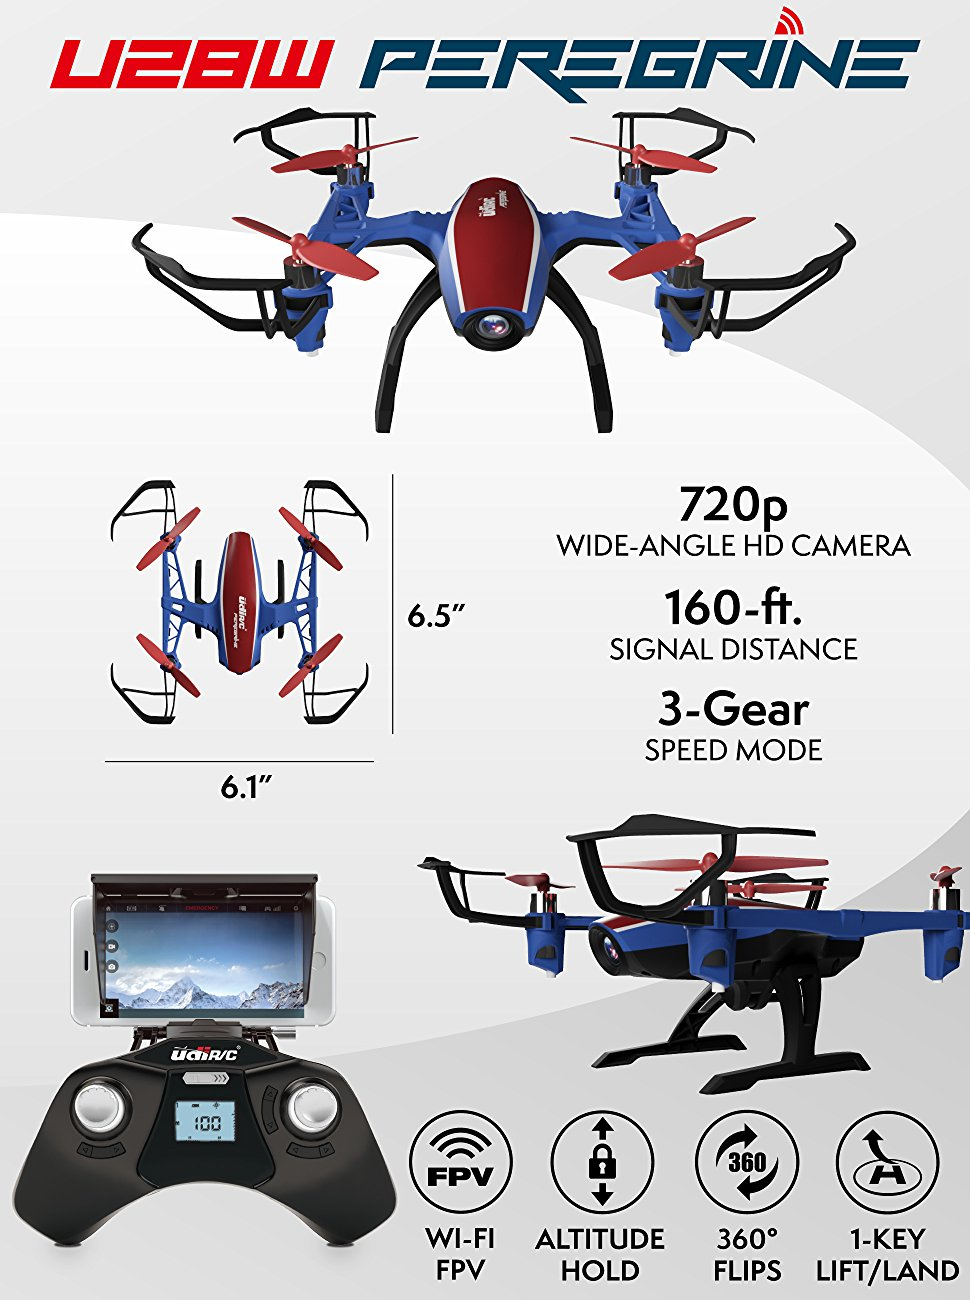 FPV drones drones HD camera live video force1 stunt VR wifi rc quadcopter kit remote control android